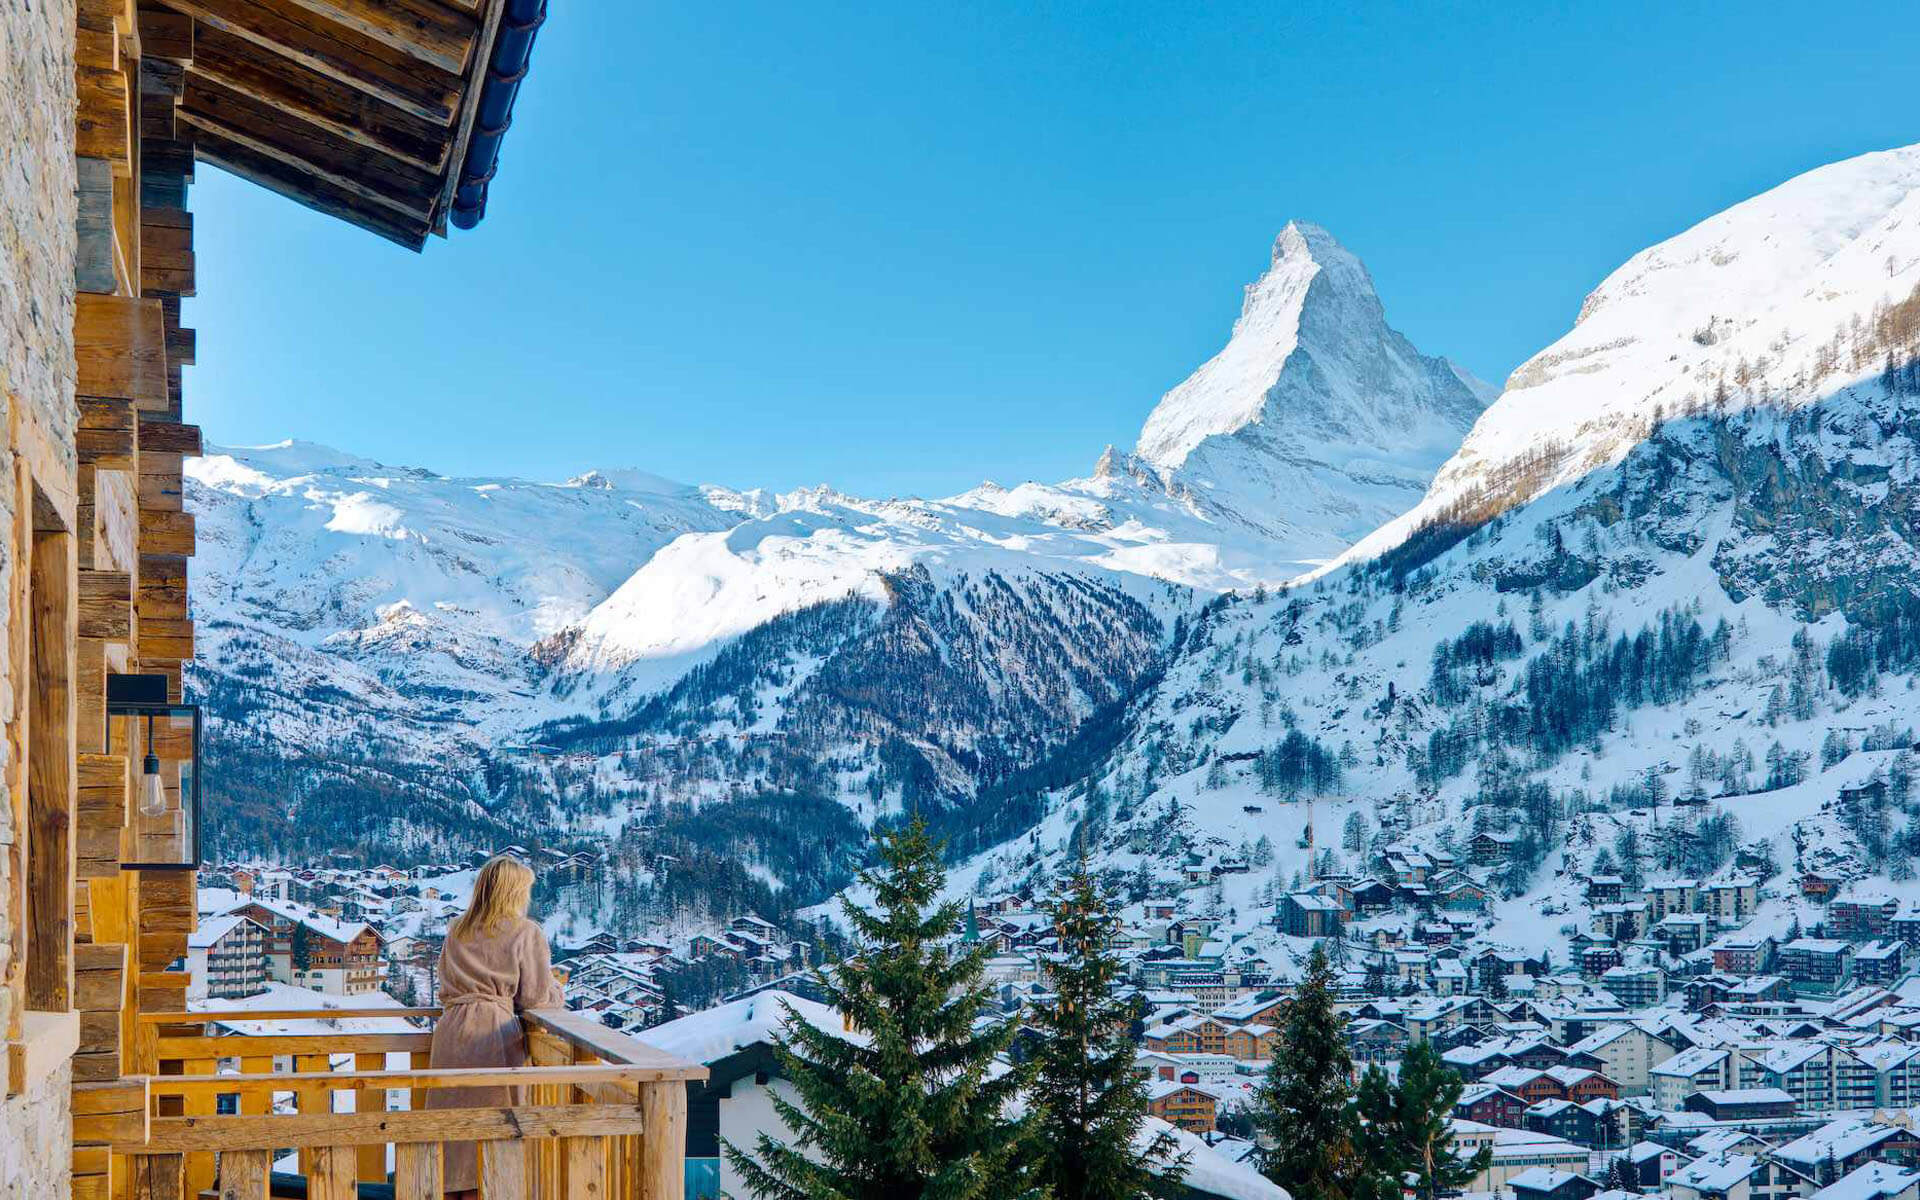 Zermatt is made for late season such as spring skiing with its high altitude that boasts the highest runs in the Alps at above 3,000 metres.